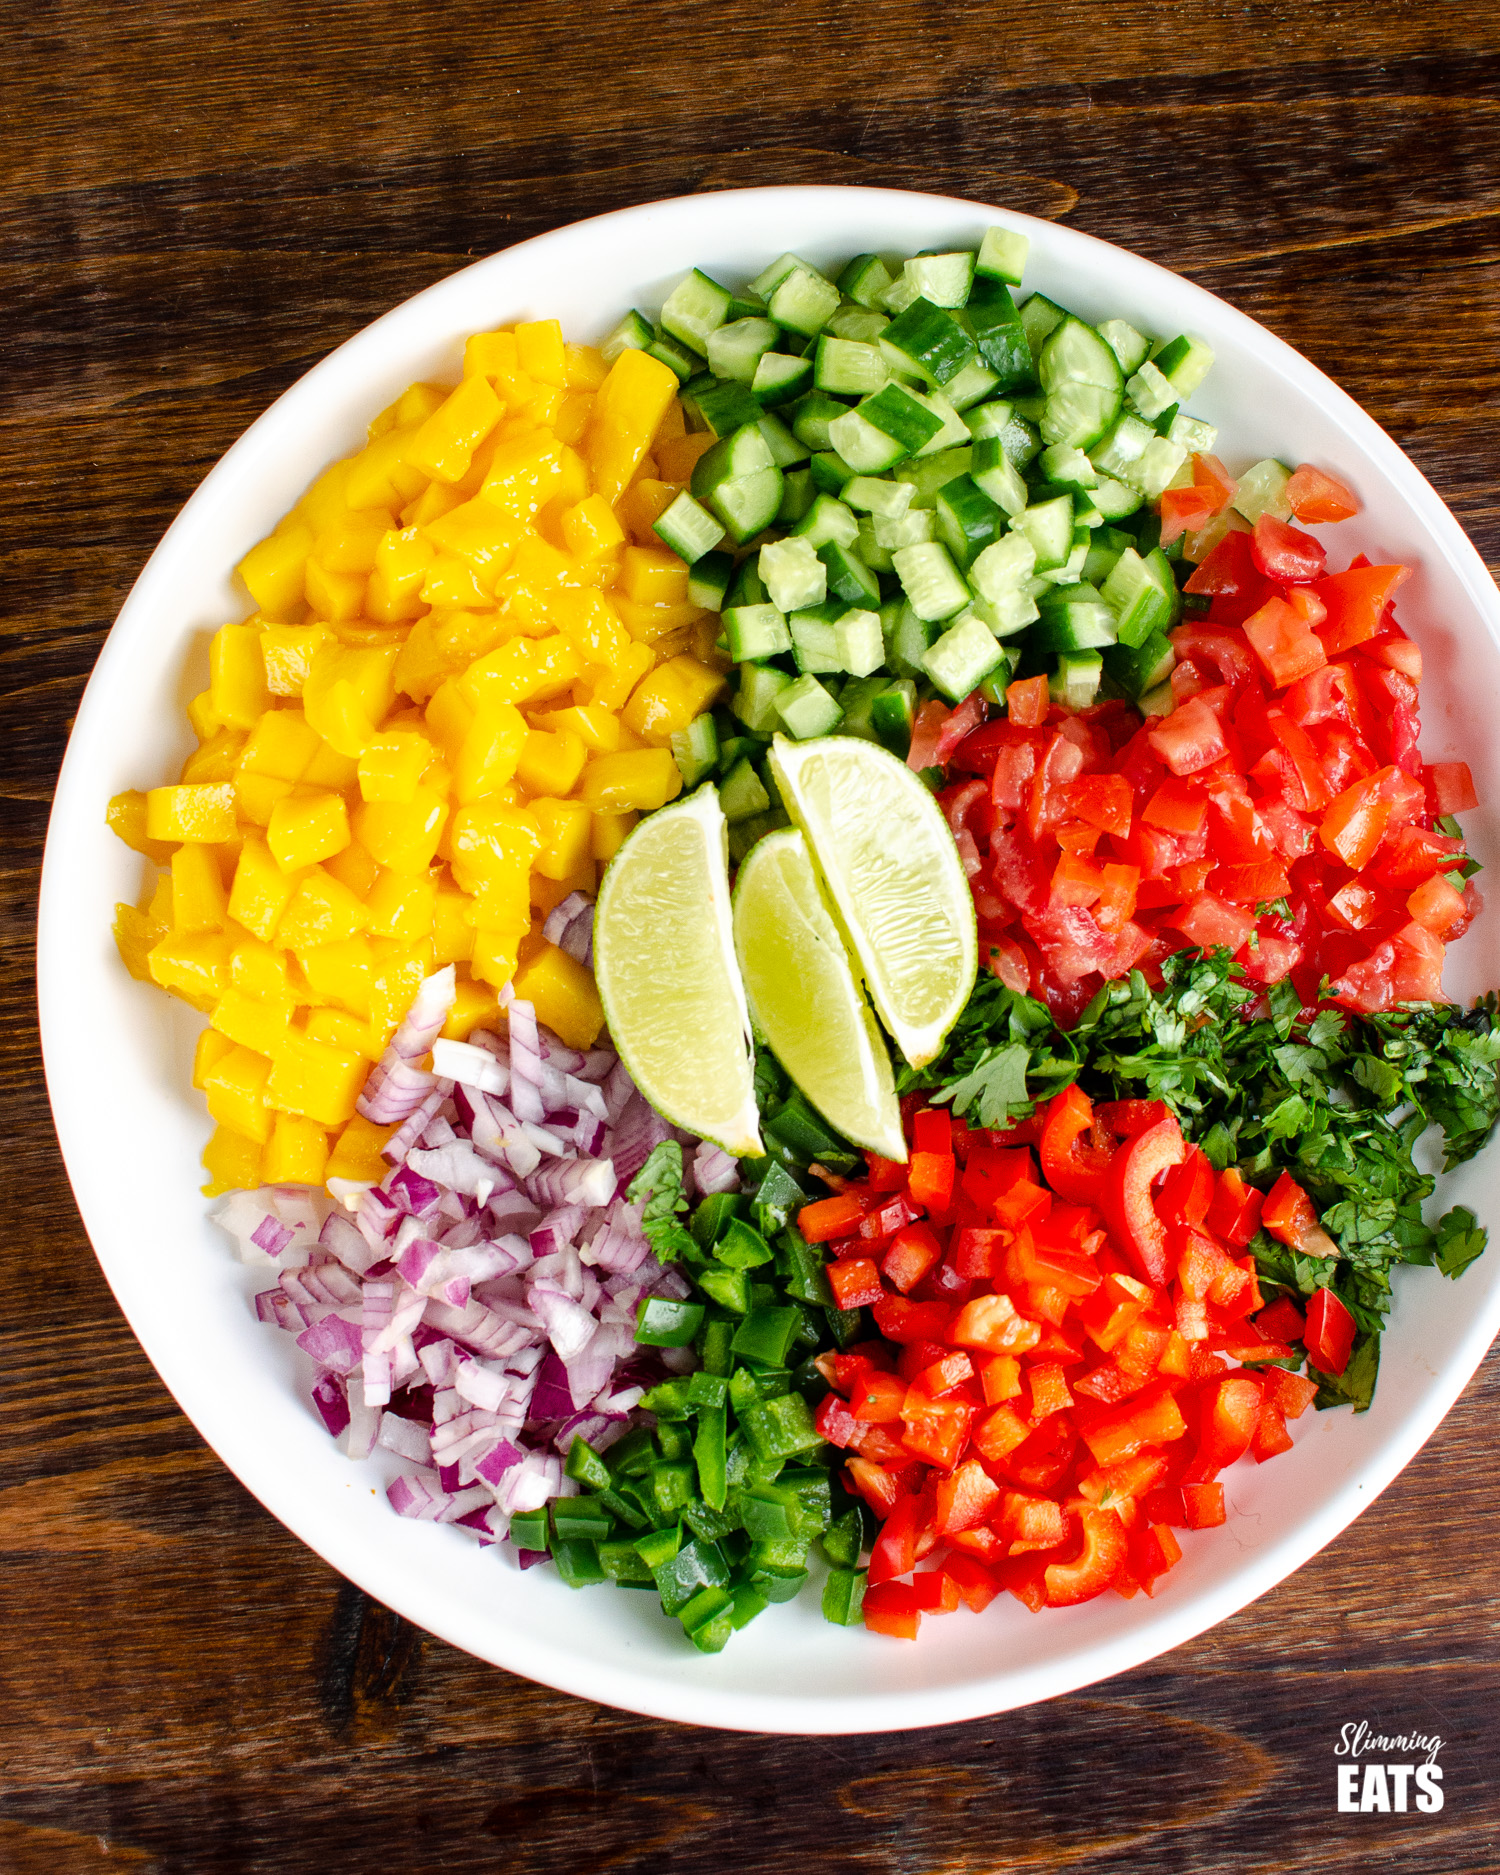 ingredients for mango salsa - mango, onion, red bell pepper, tomatoes, cilantro, lime slices, jalapeno and cucumber in a white bowl